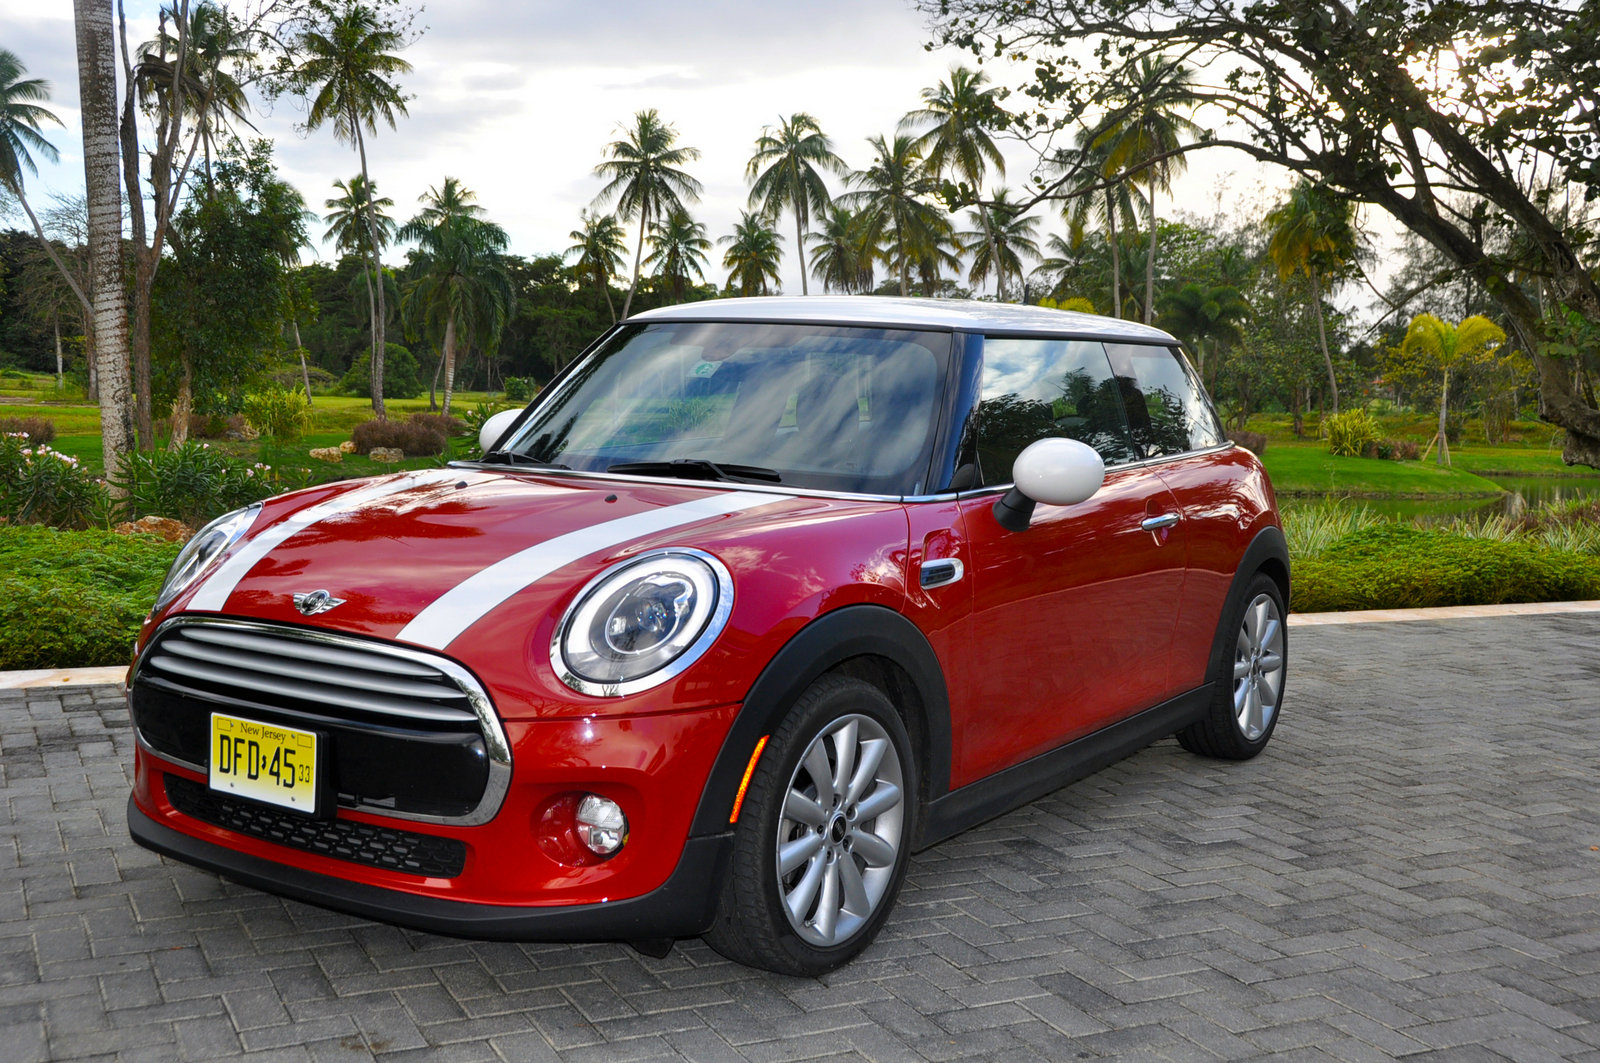 2014 mini cooper picture 541445 car review top speed. Black Bedroom Furniture Sets. Home Design Ideas